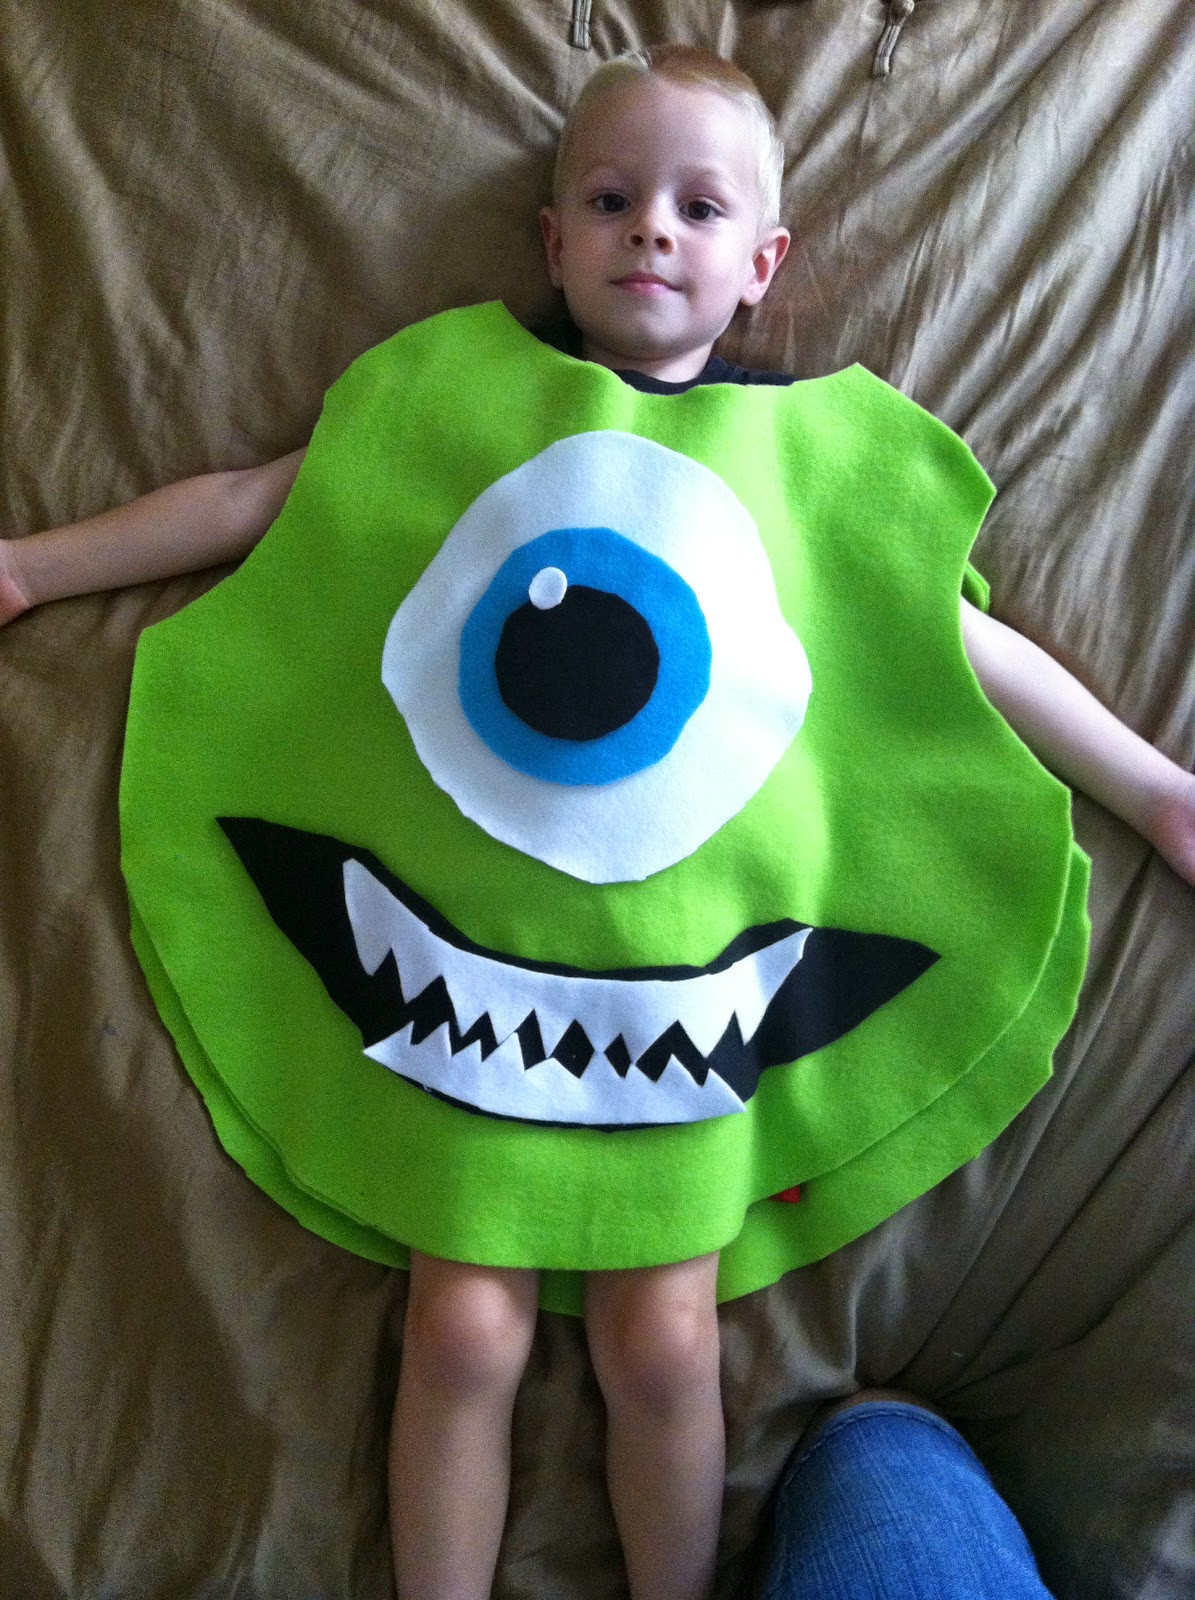 Best ideas about DIY Monsters Inc Costume . Save or Pin Chadwicks Picture Place Homemade Mike Wazowski Halloween Now.